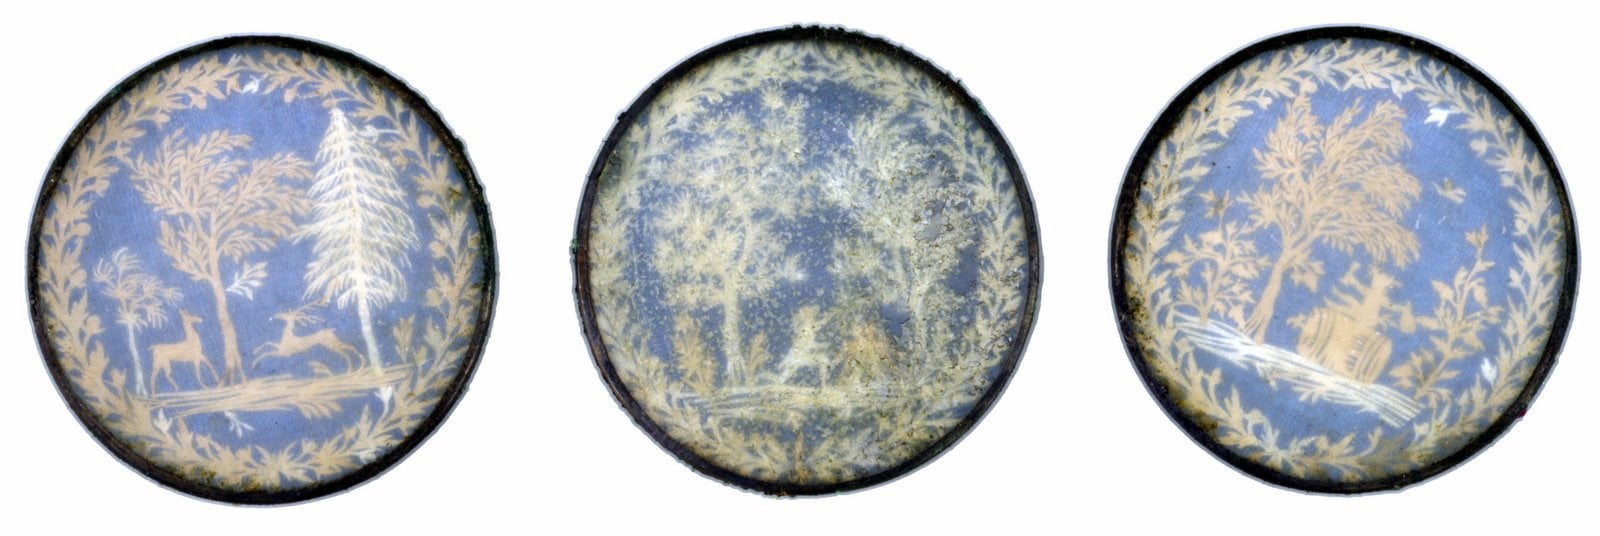 Antique decoupage silk buttons from 1775-1780